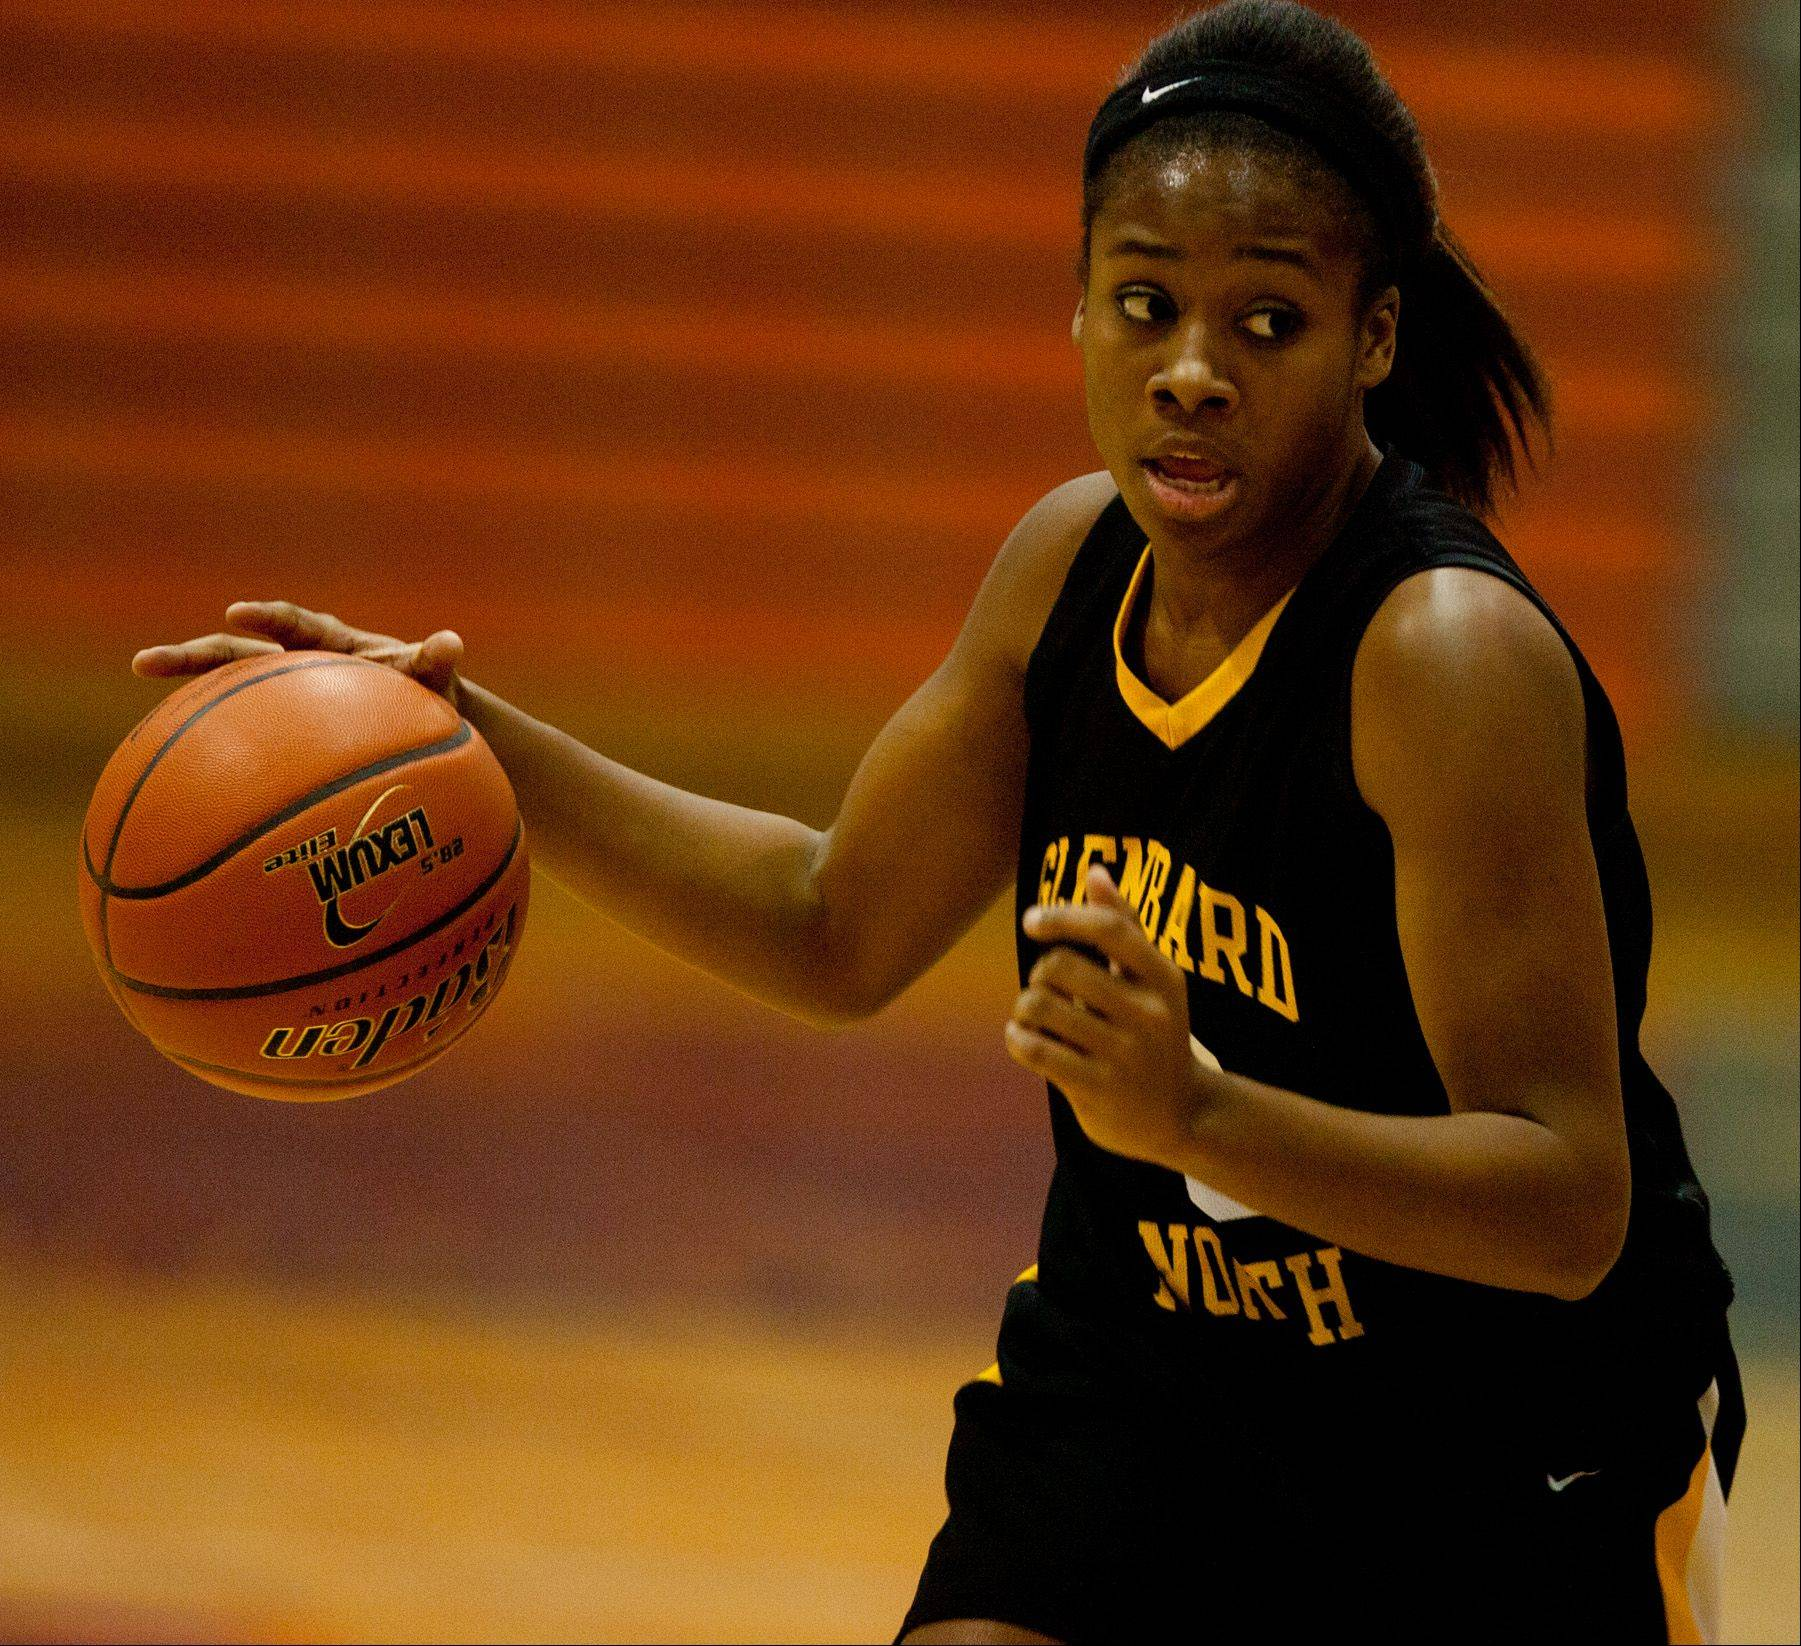 Images from the Naperville North vs. Glenbard North girls basketball game on Monday, Jan. 14, 2013.